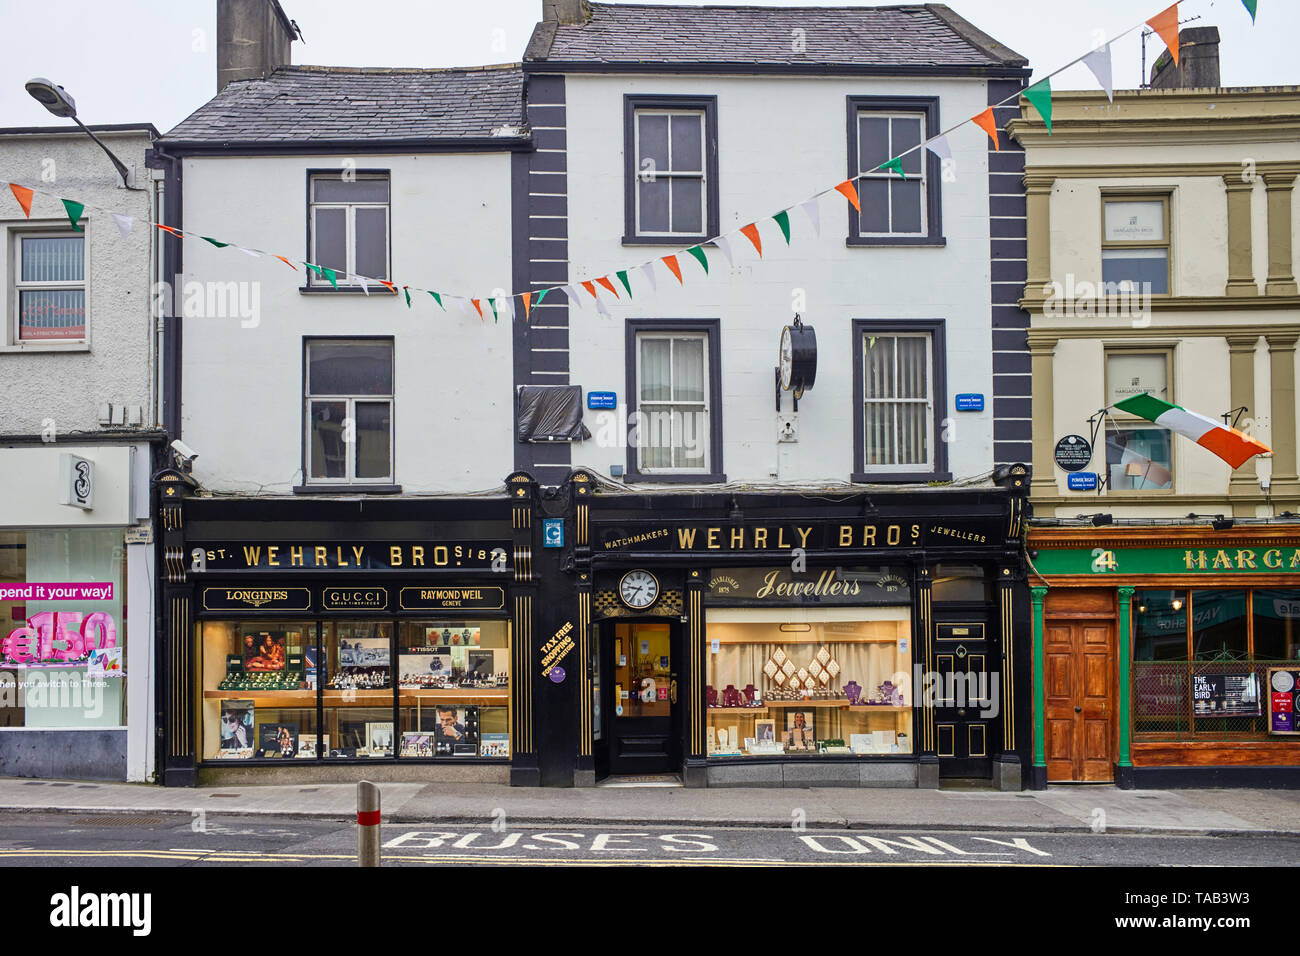 Wherly Bros jewellers shop in the centre of Sligo, Ireland - Stock Image